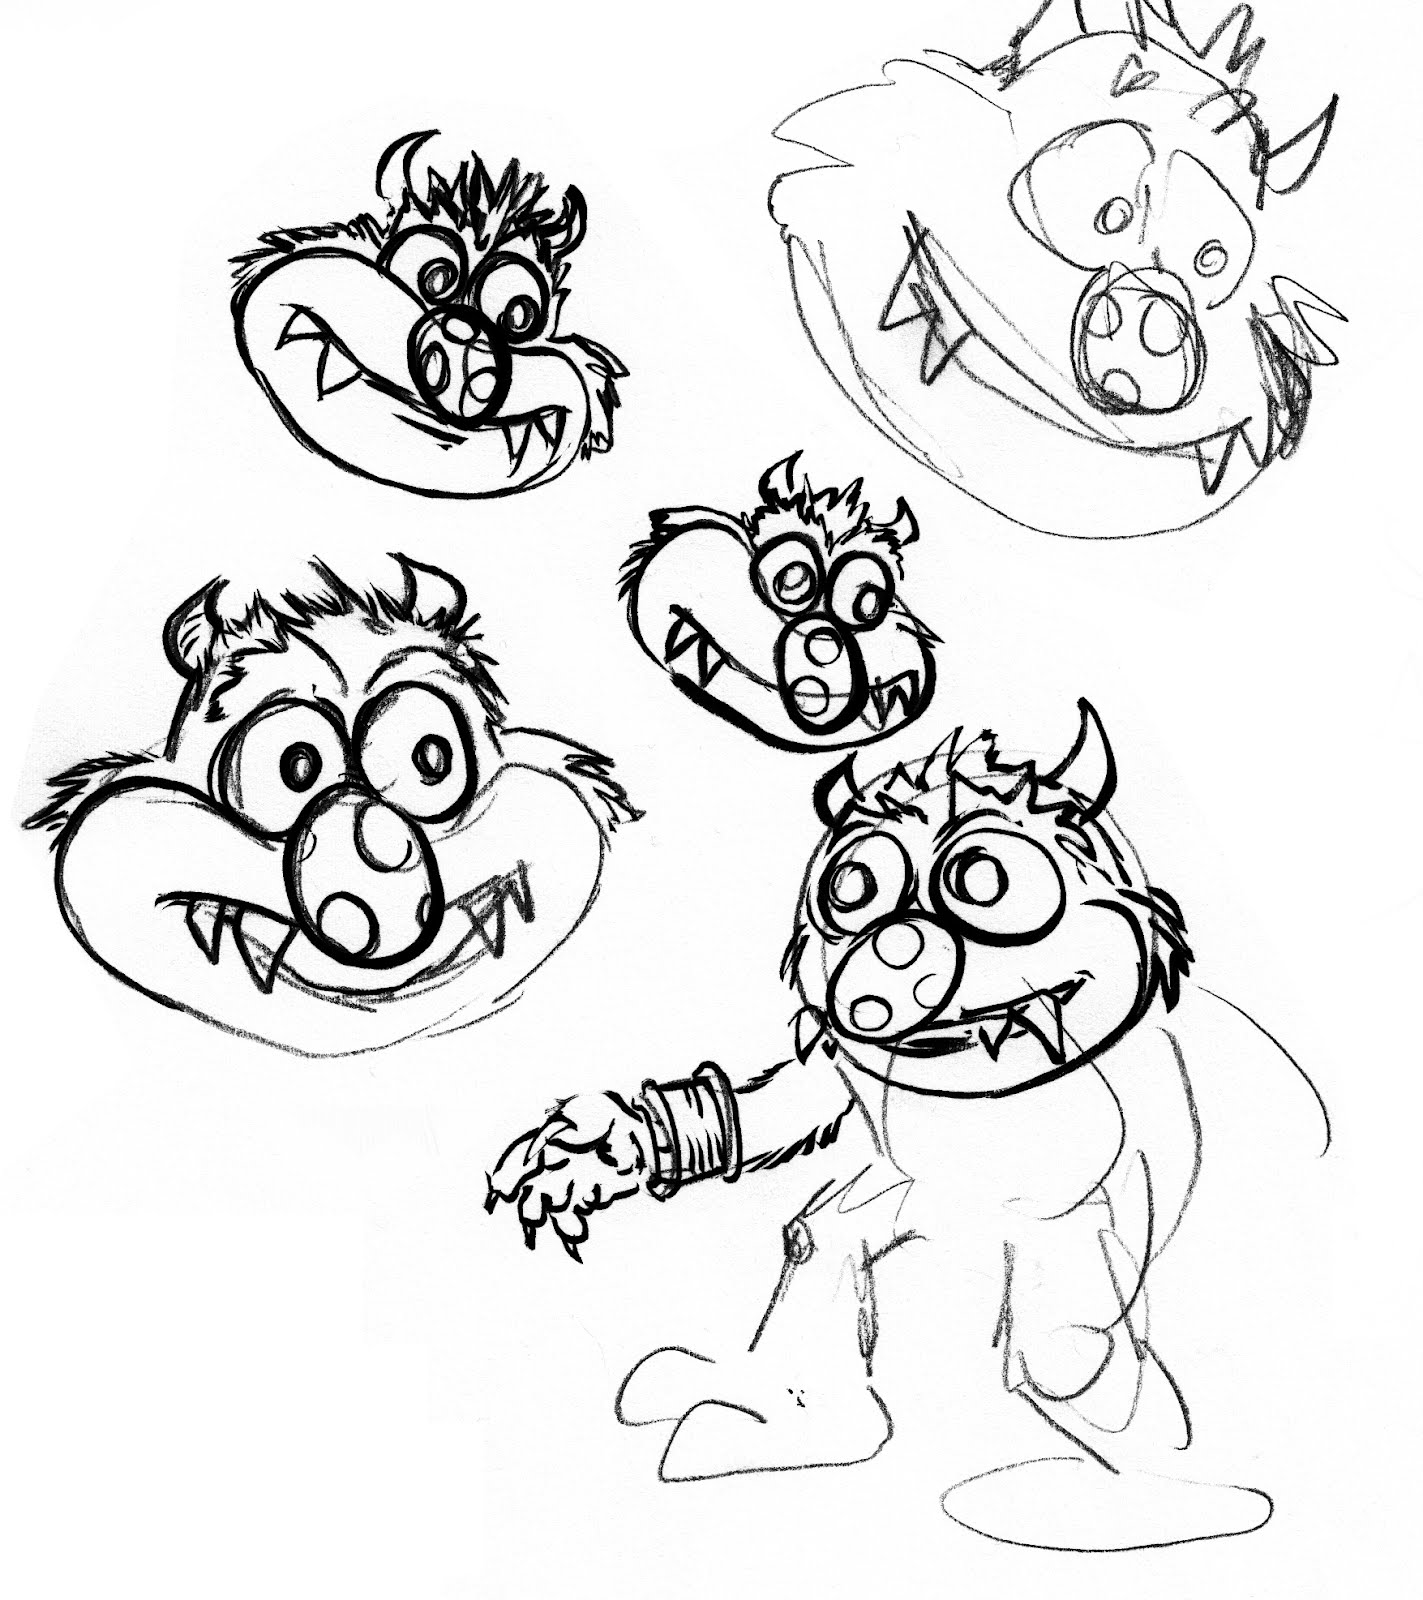 pretty good blog: Warm up Sketch : My Pet Monster